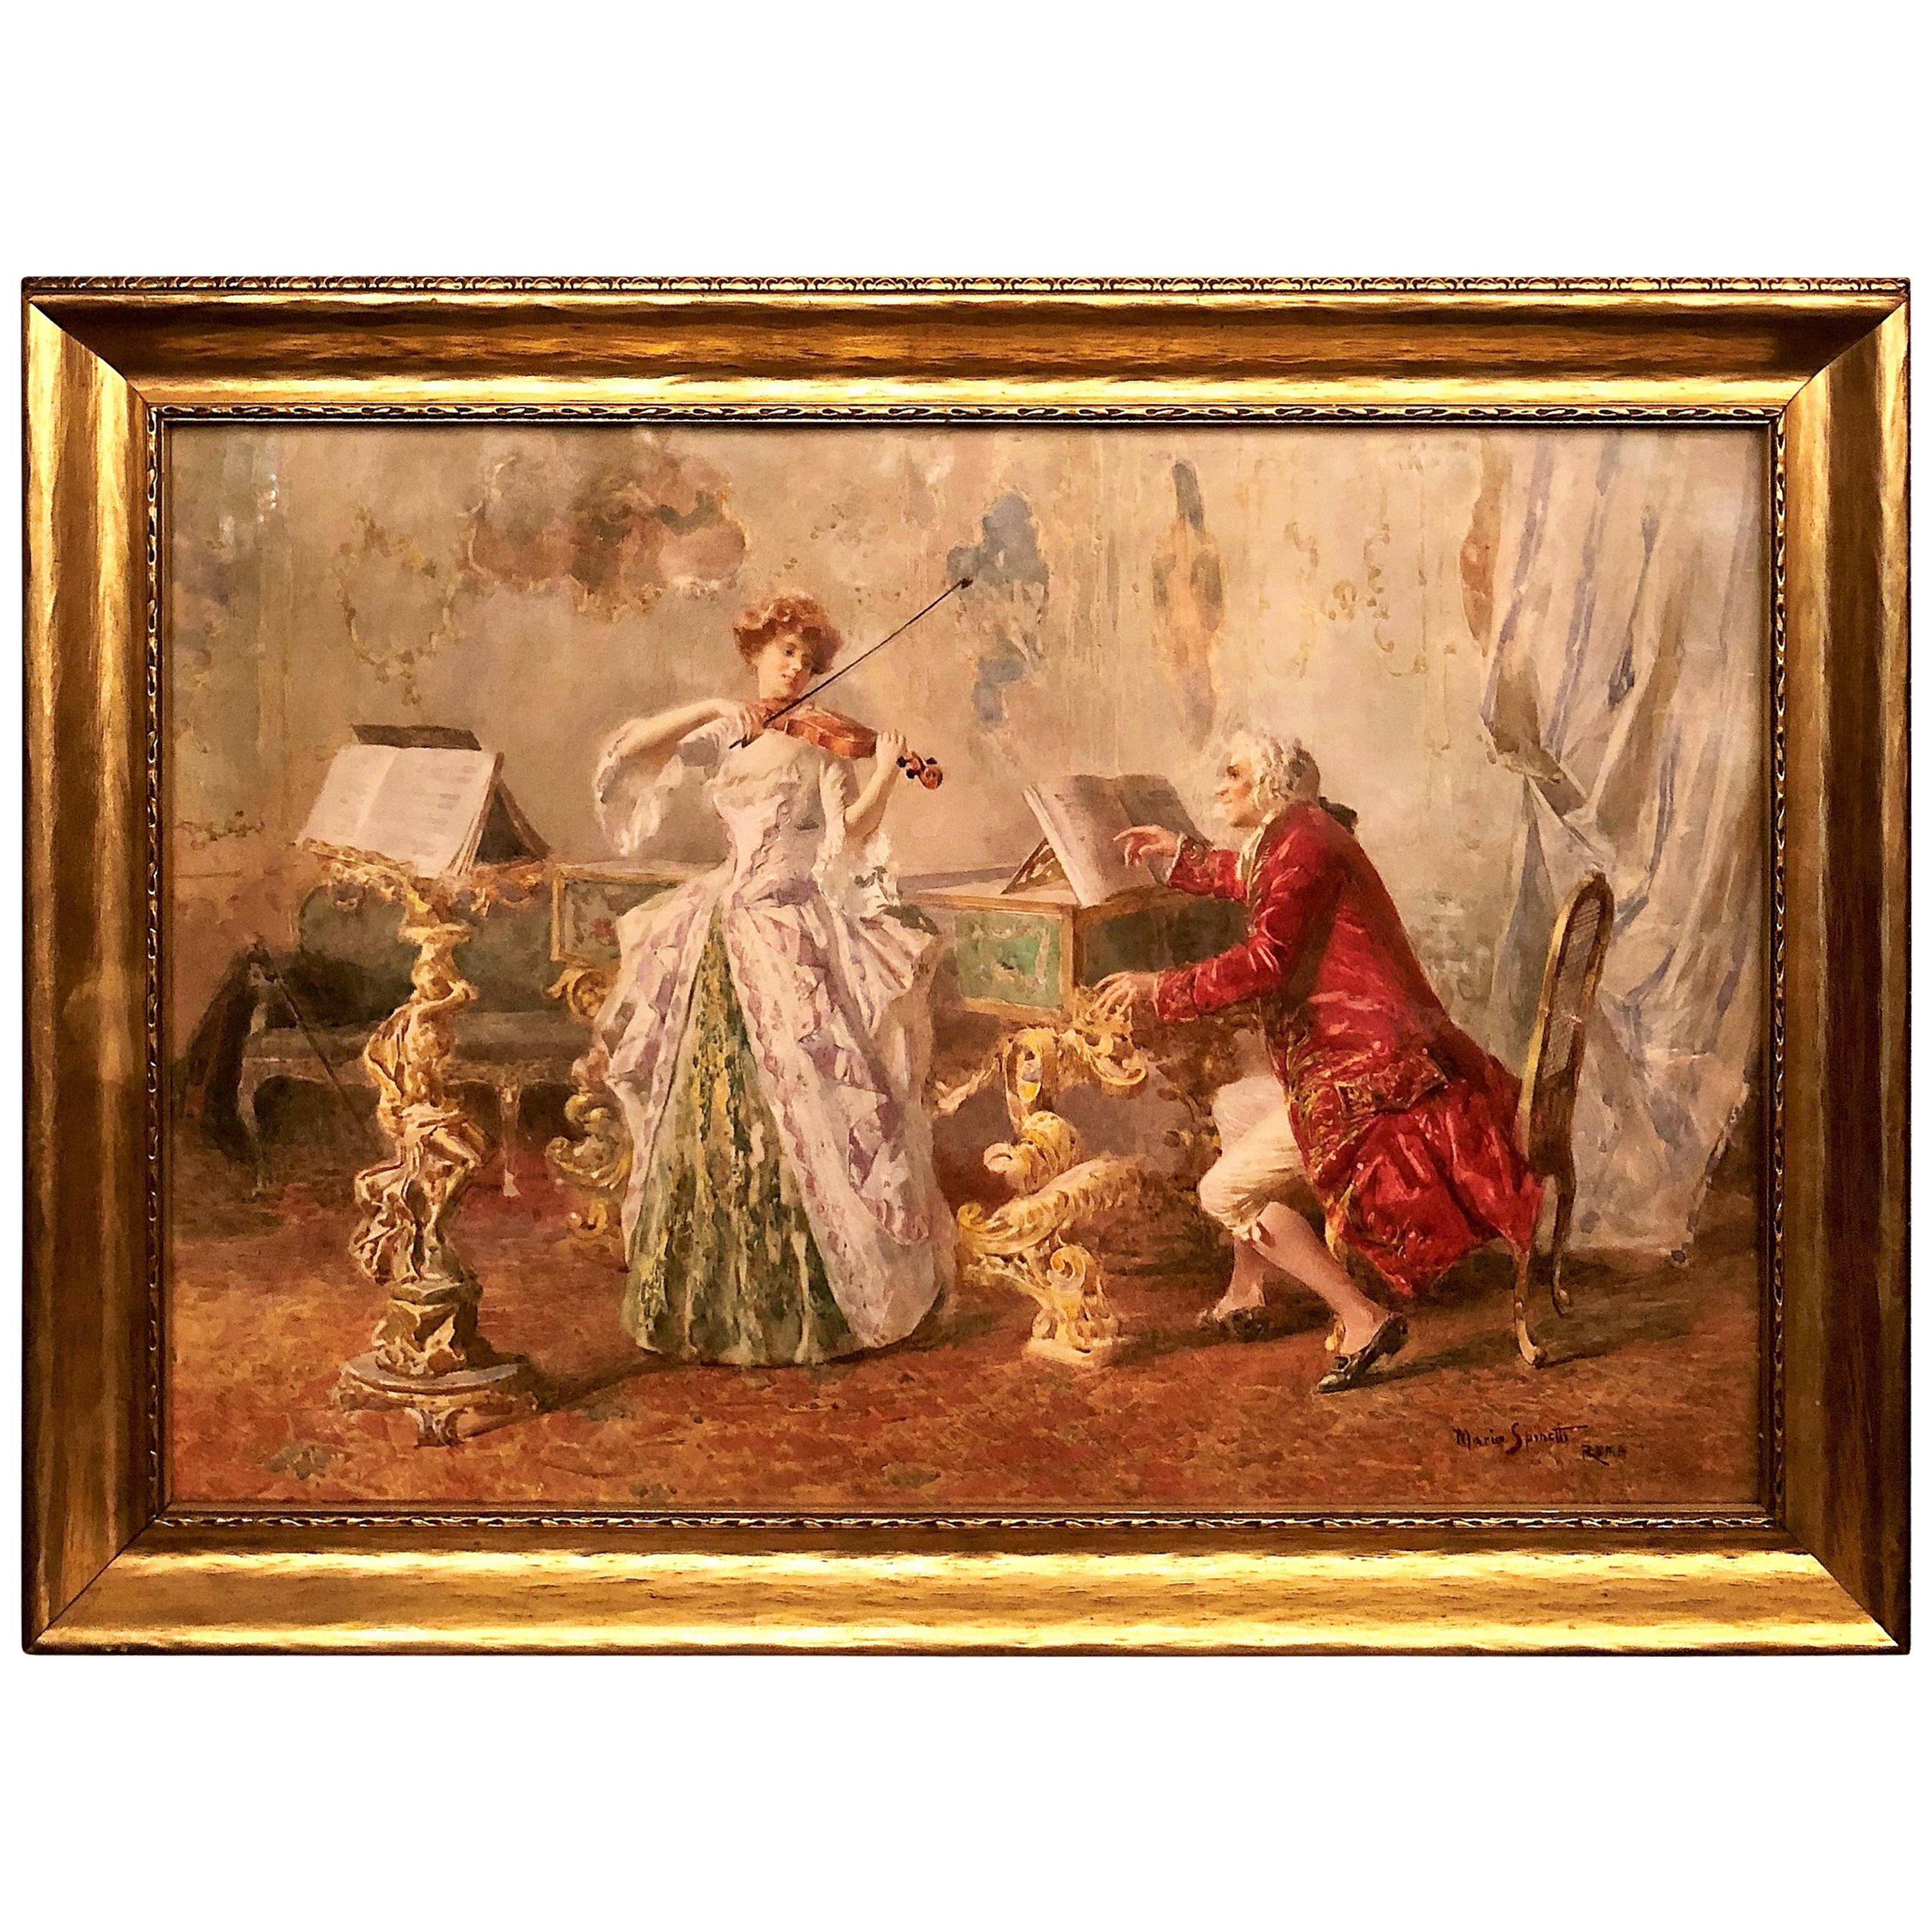 Antique Italian Watercolor Painting Signed by Mario Spinetti, 1848-1925